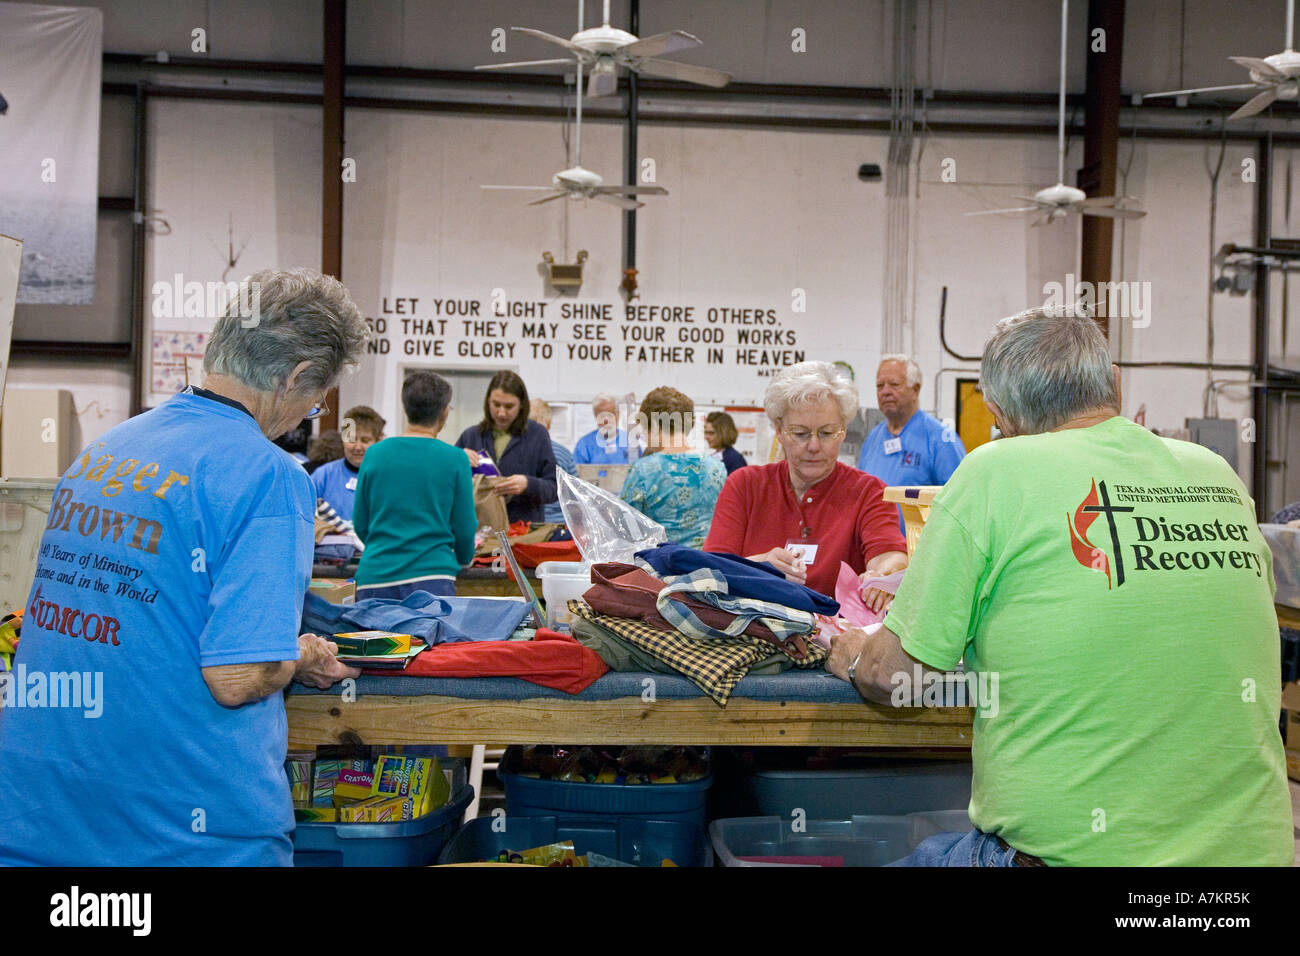 Volunteers Pack Supplies for Disaster Relief - Stock Image